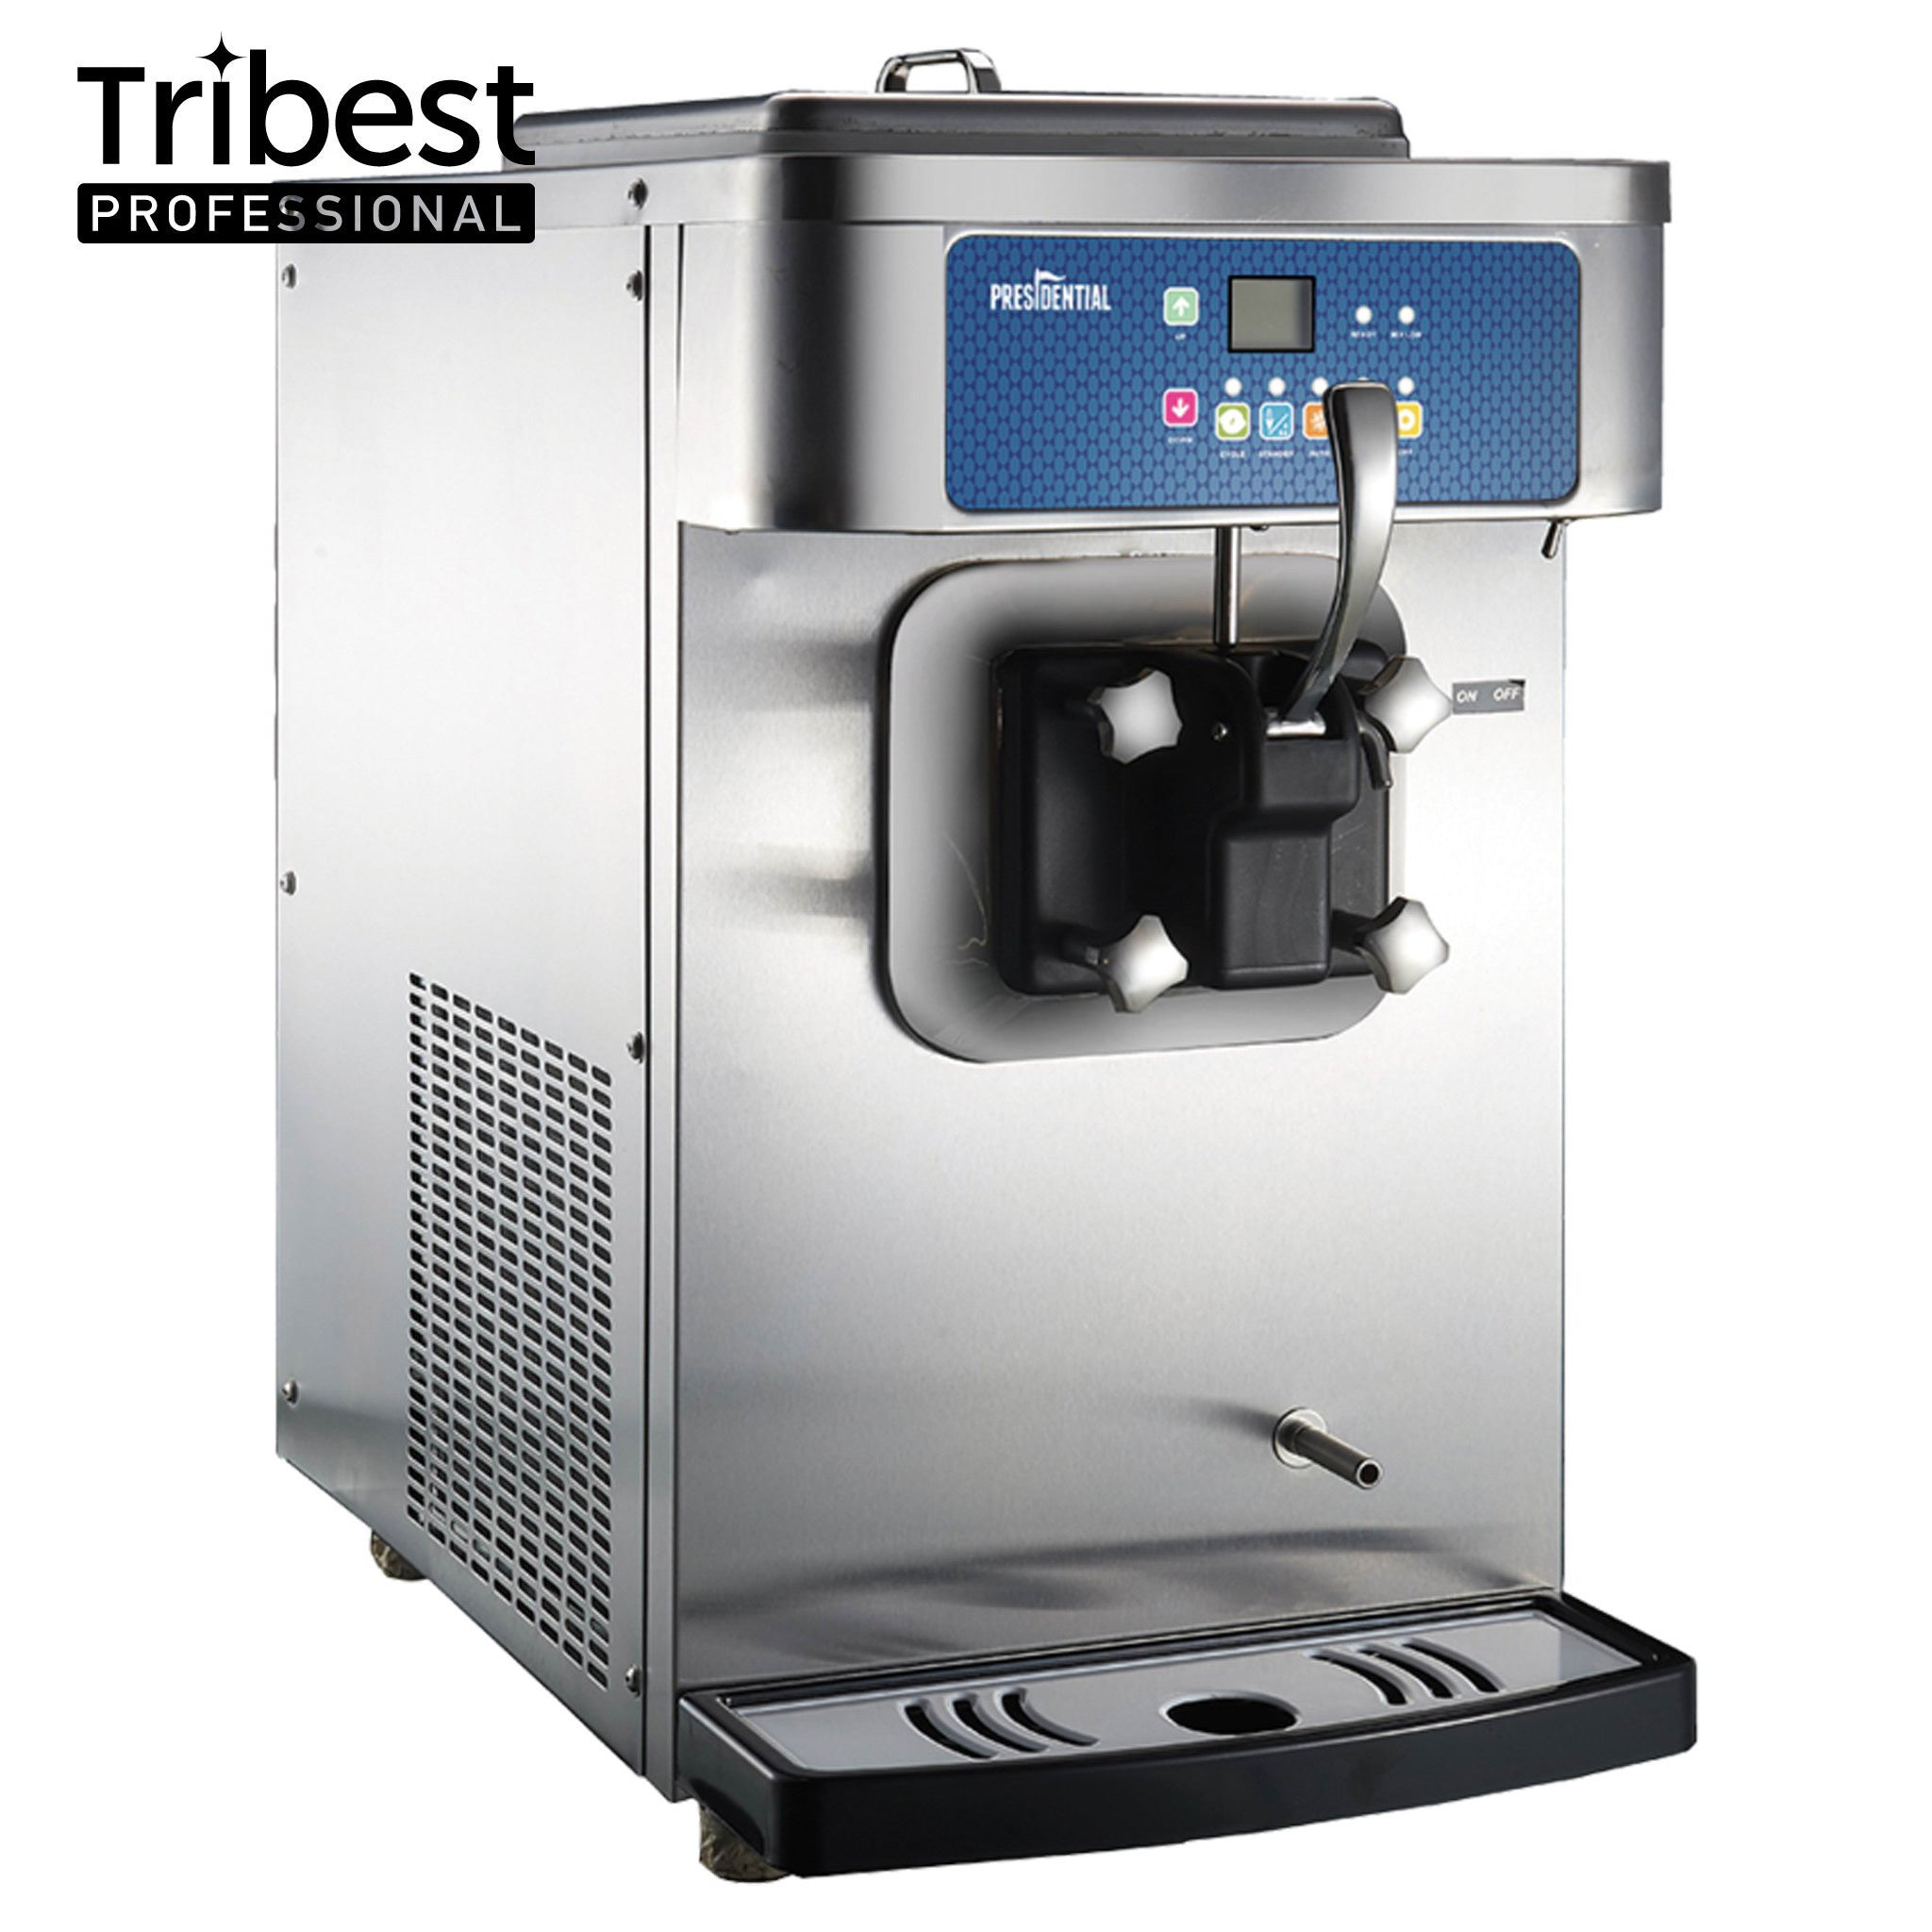 Tribest Professional Soft-Serve Countertop Machine - 1 Flavor